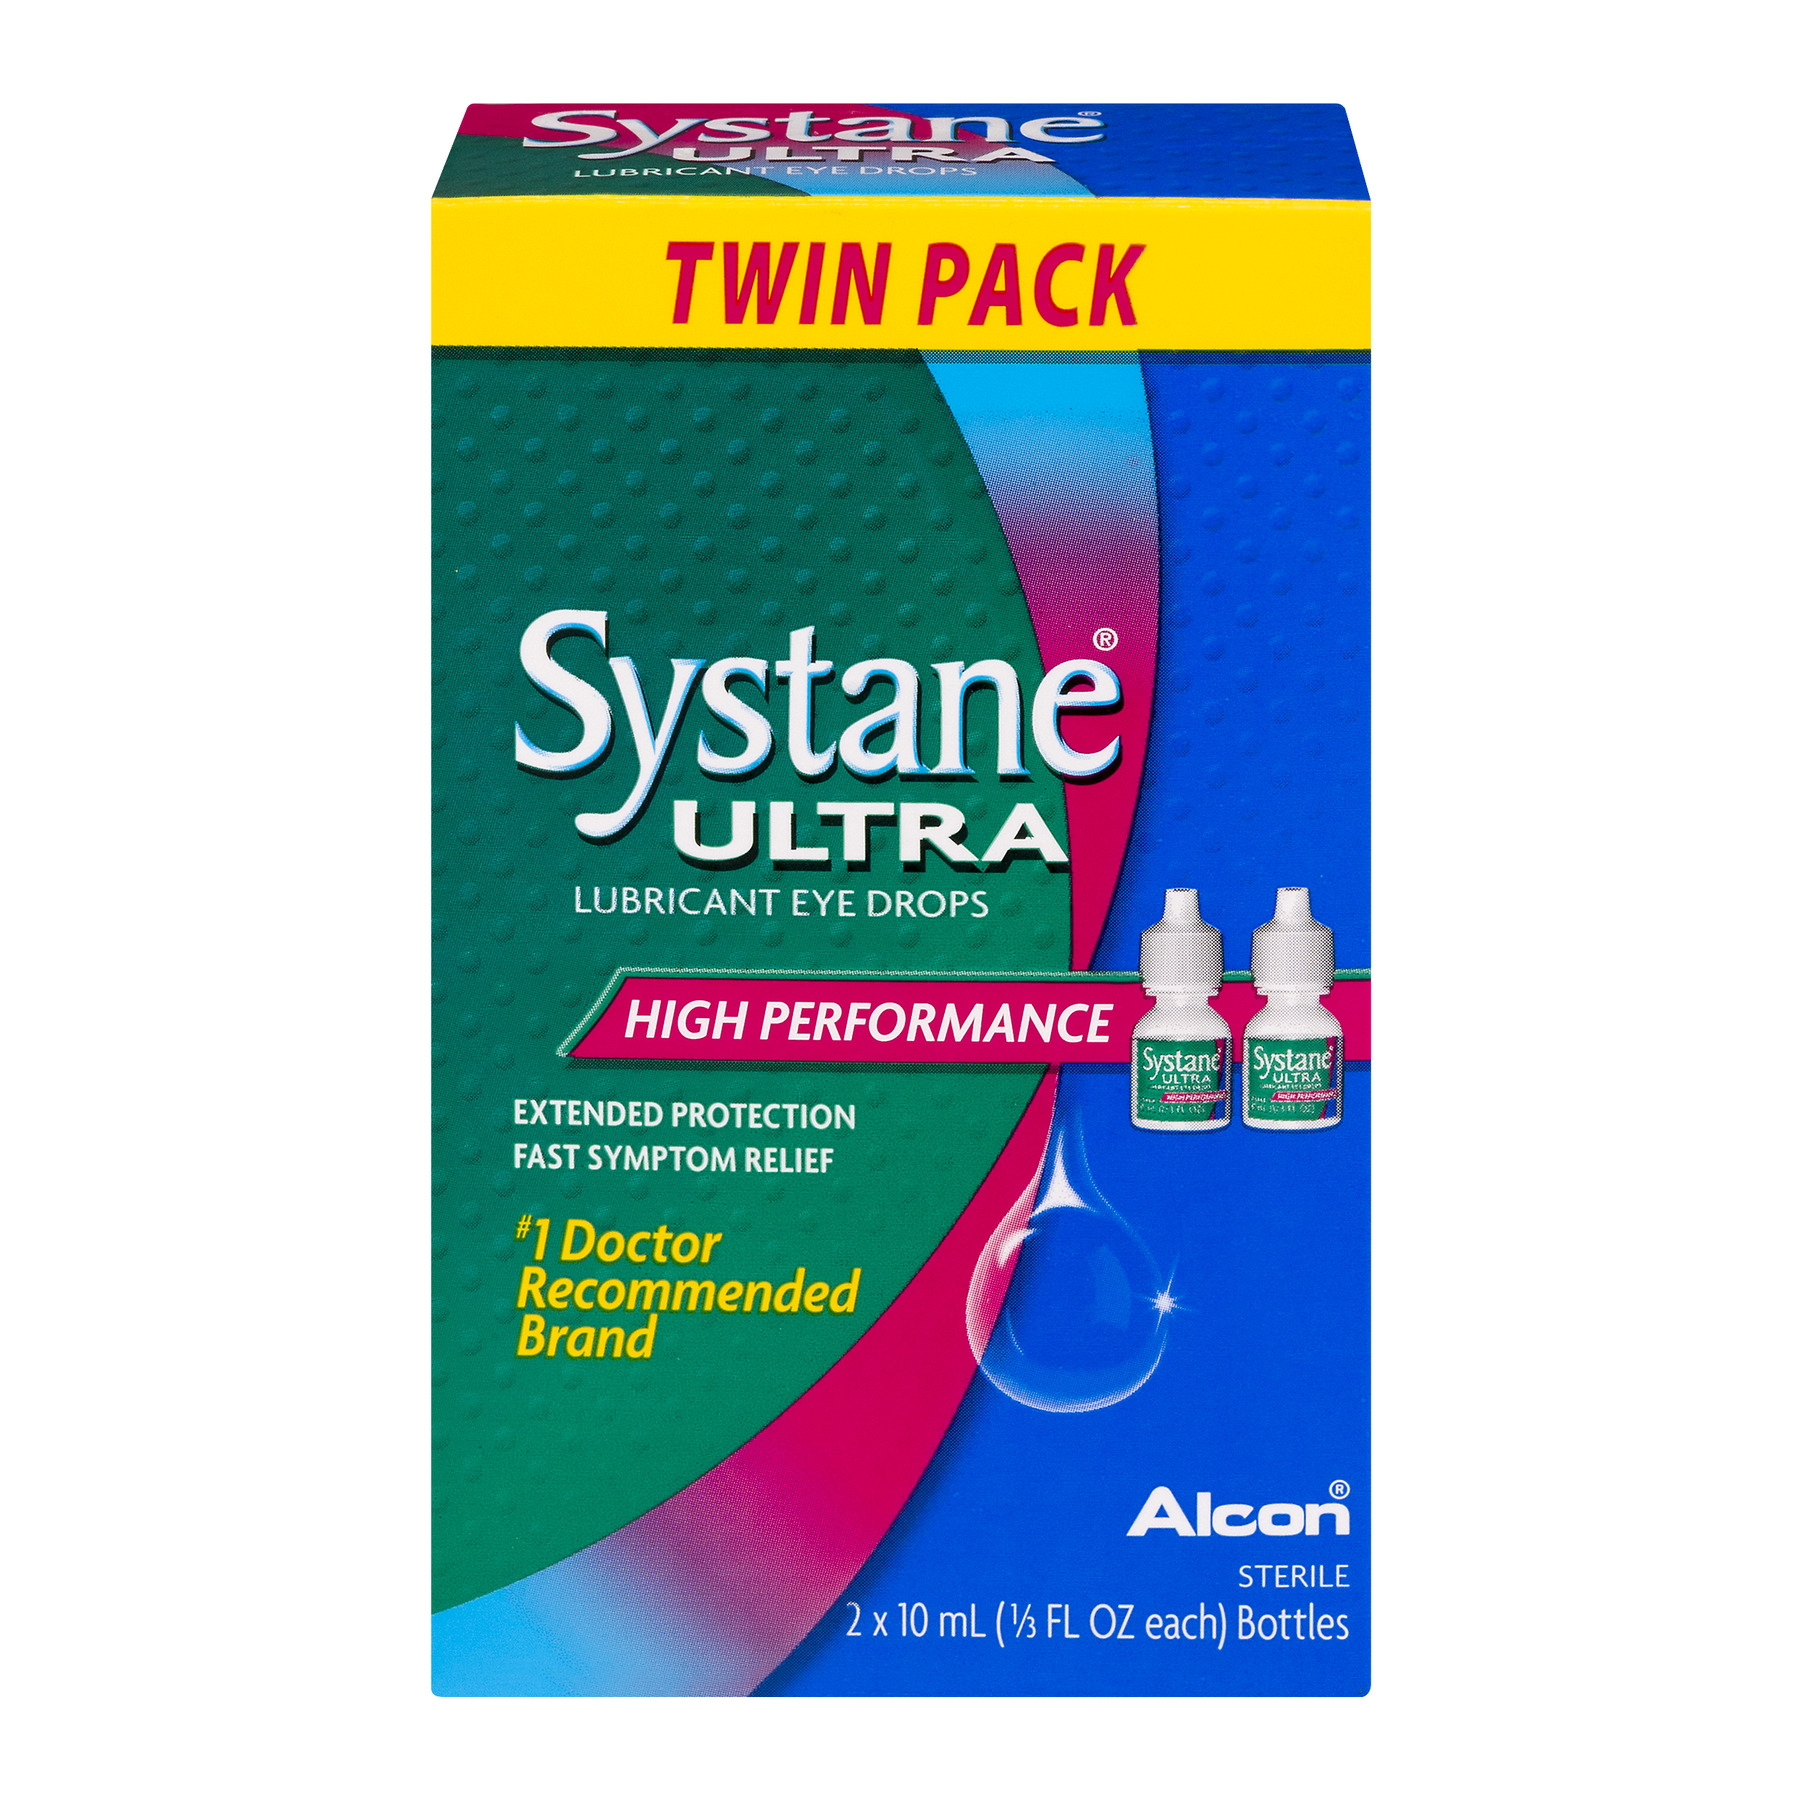 Systane Ultra Lubricant Eye Drops High Performance - 2 PK, 0.33 FL OZ - Walmart.com | Tuggl